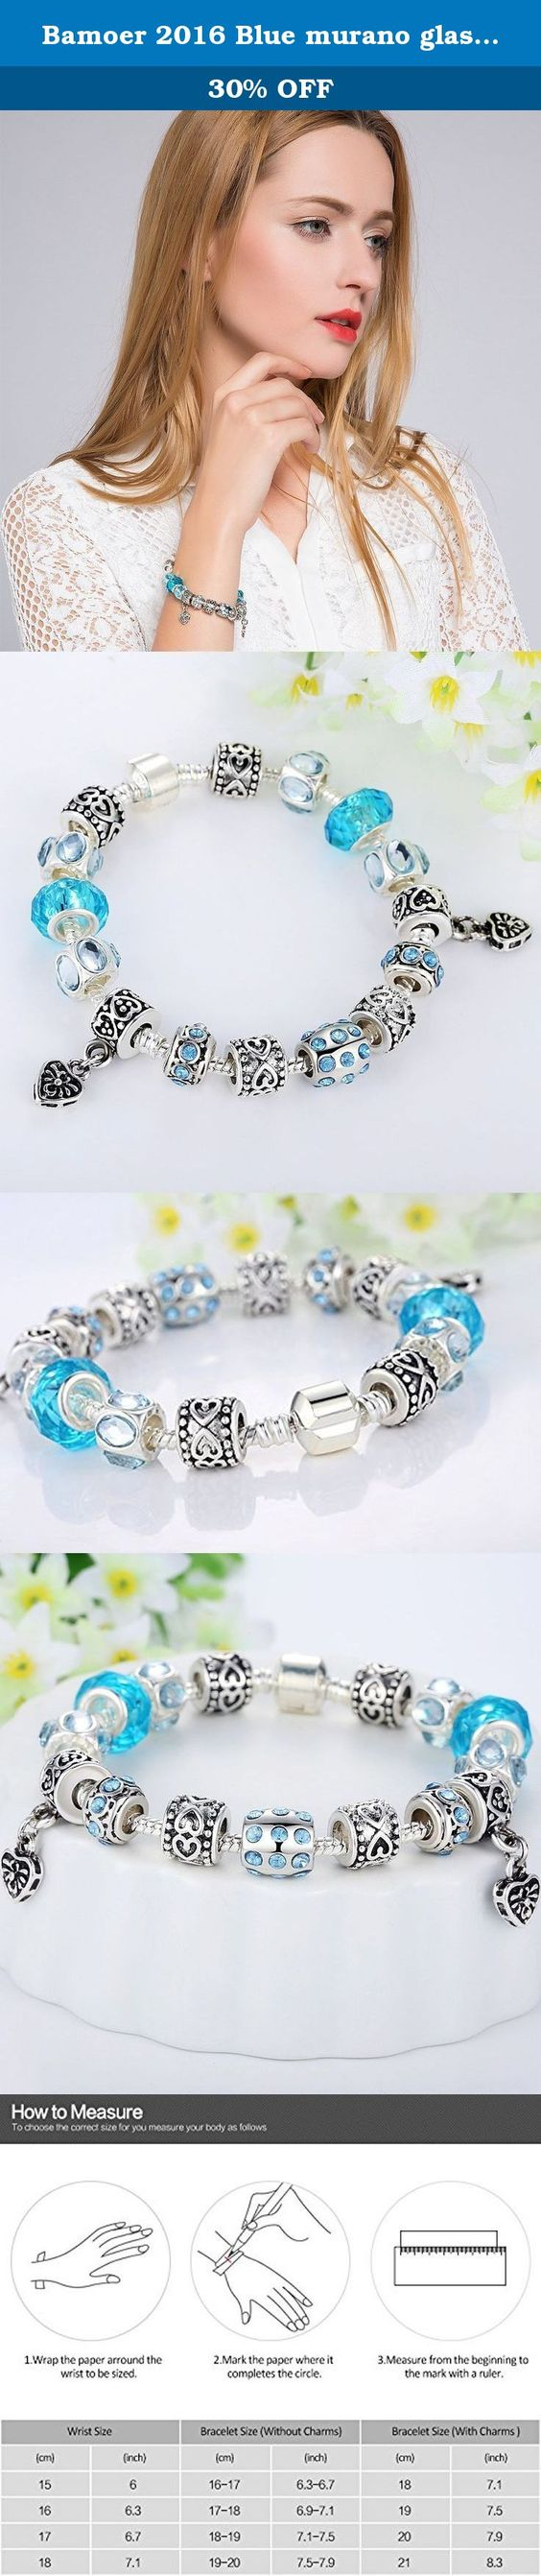 Bamoer 2016 Blue murano glass beads heart Charm Beaded Vintage Silver Plated Bracelet Fashion Jewelry Gifts for Women Girls 7.08 inches. Brand History: Bamoer is a vibrant, young, and modern brand. With over 4 Years of international trading Bamoer offer the hot sale items for our best customer and reasonable price This stunning bracelet by bisaer shines with blue crystals and glass beads. This jewelry piece features a snake chain and a barrel clasp. The blues will be the last thing on…